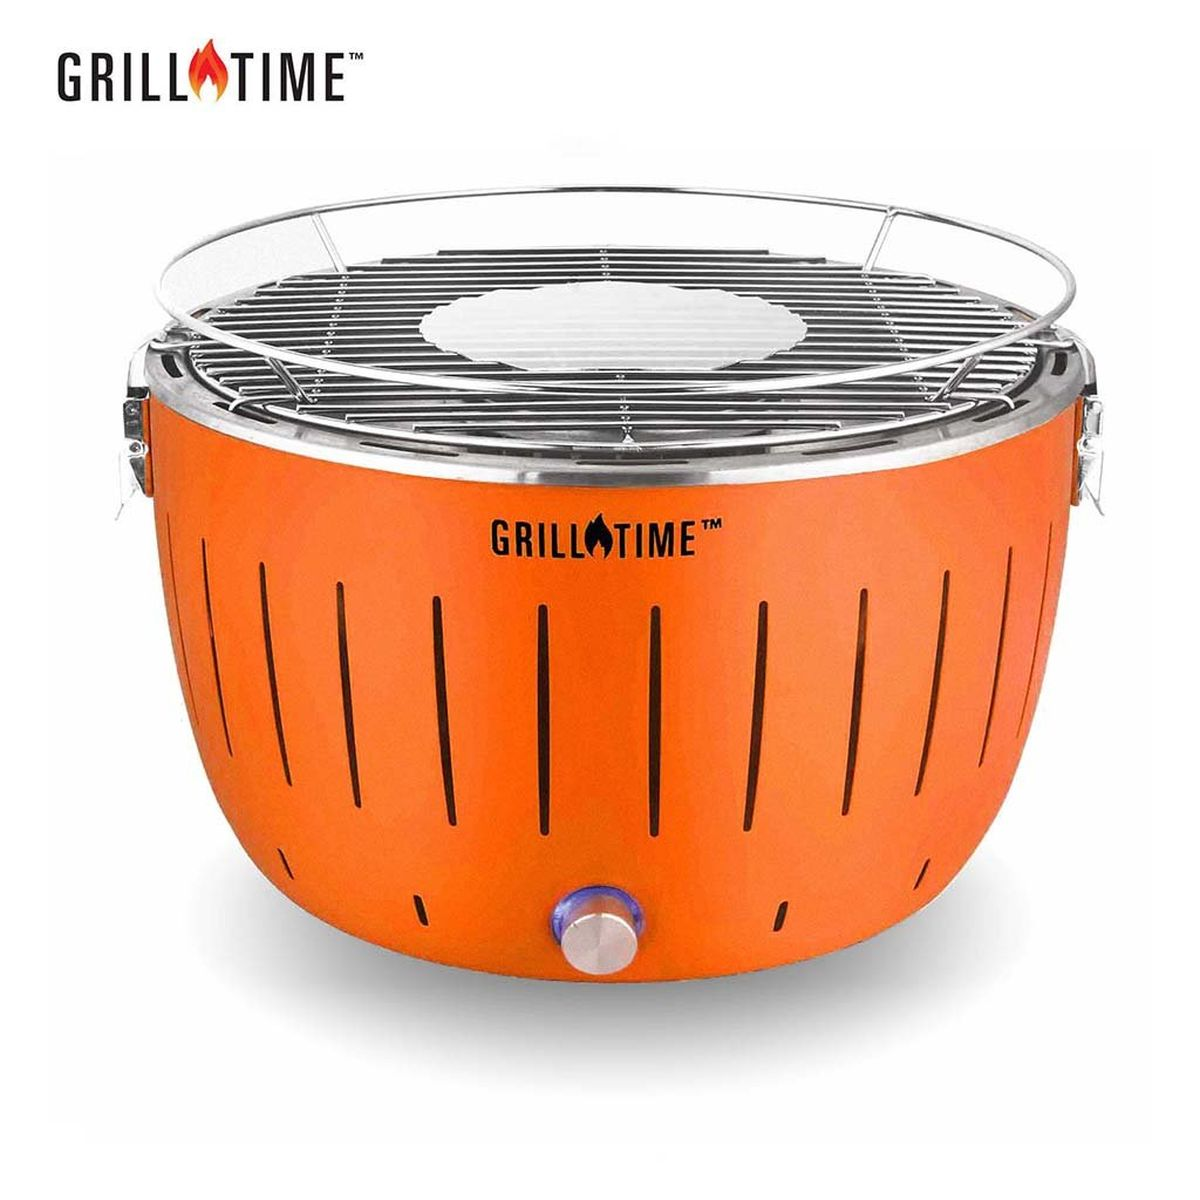 Grill Time Tailgater GT Regular Pack Portable Charcoal Grill - Orange